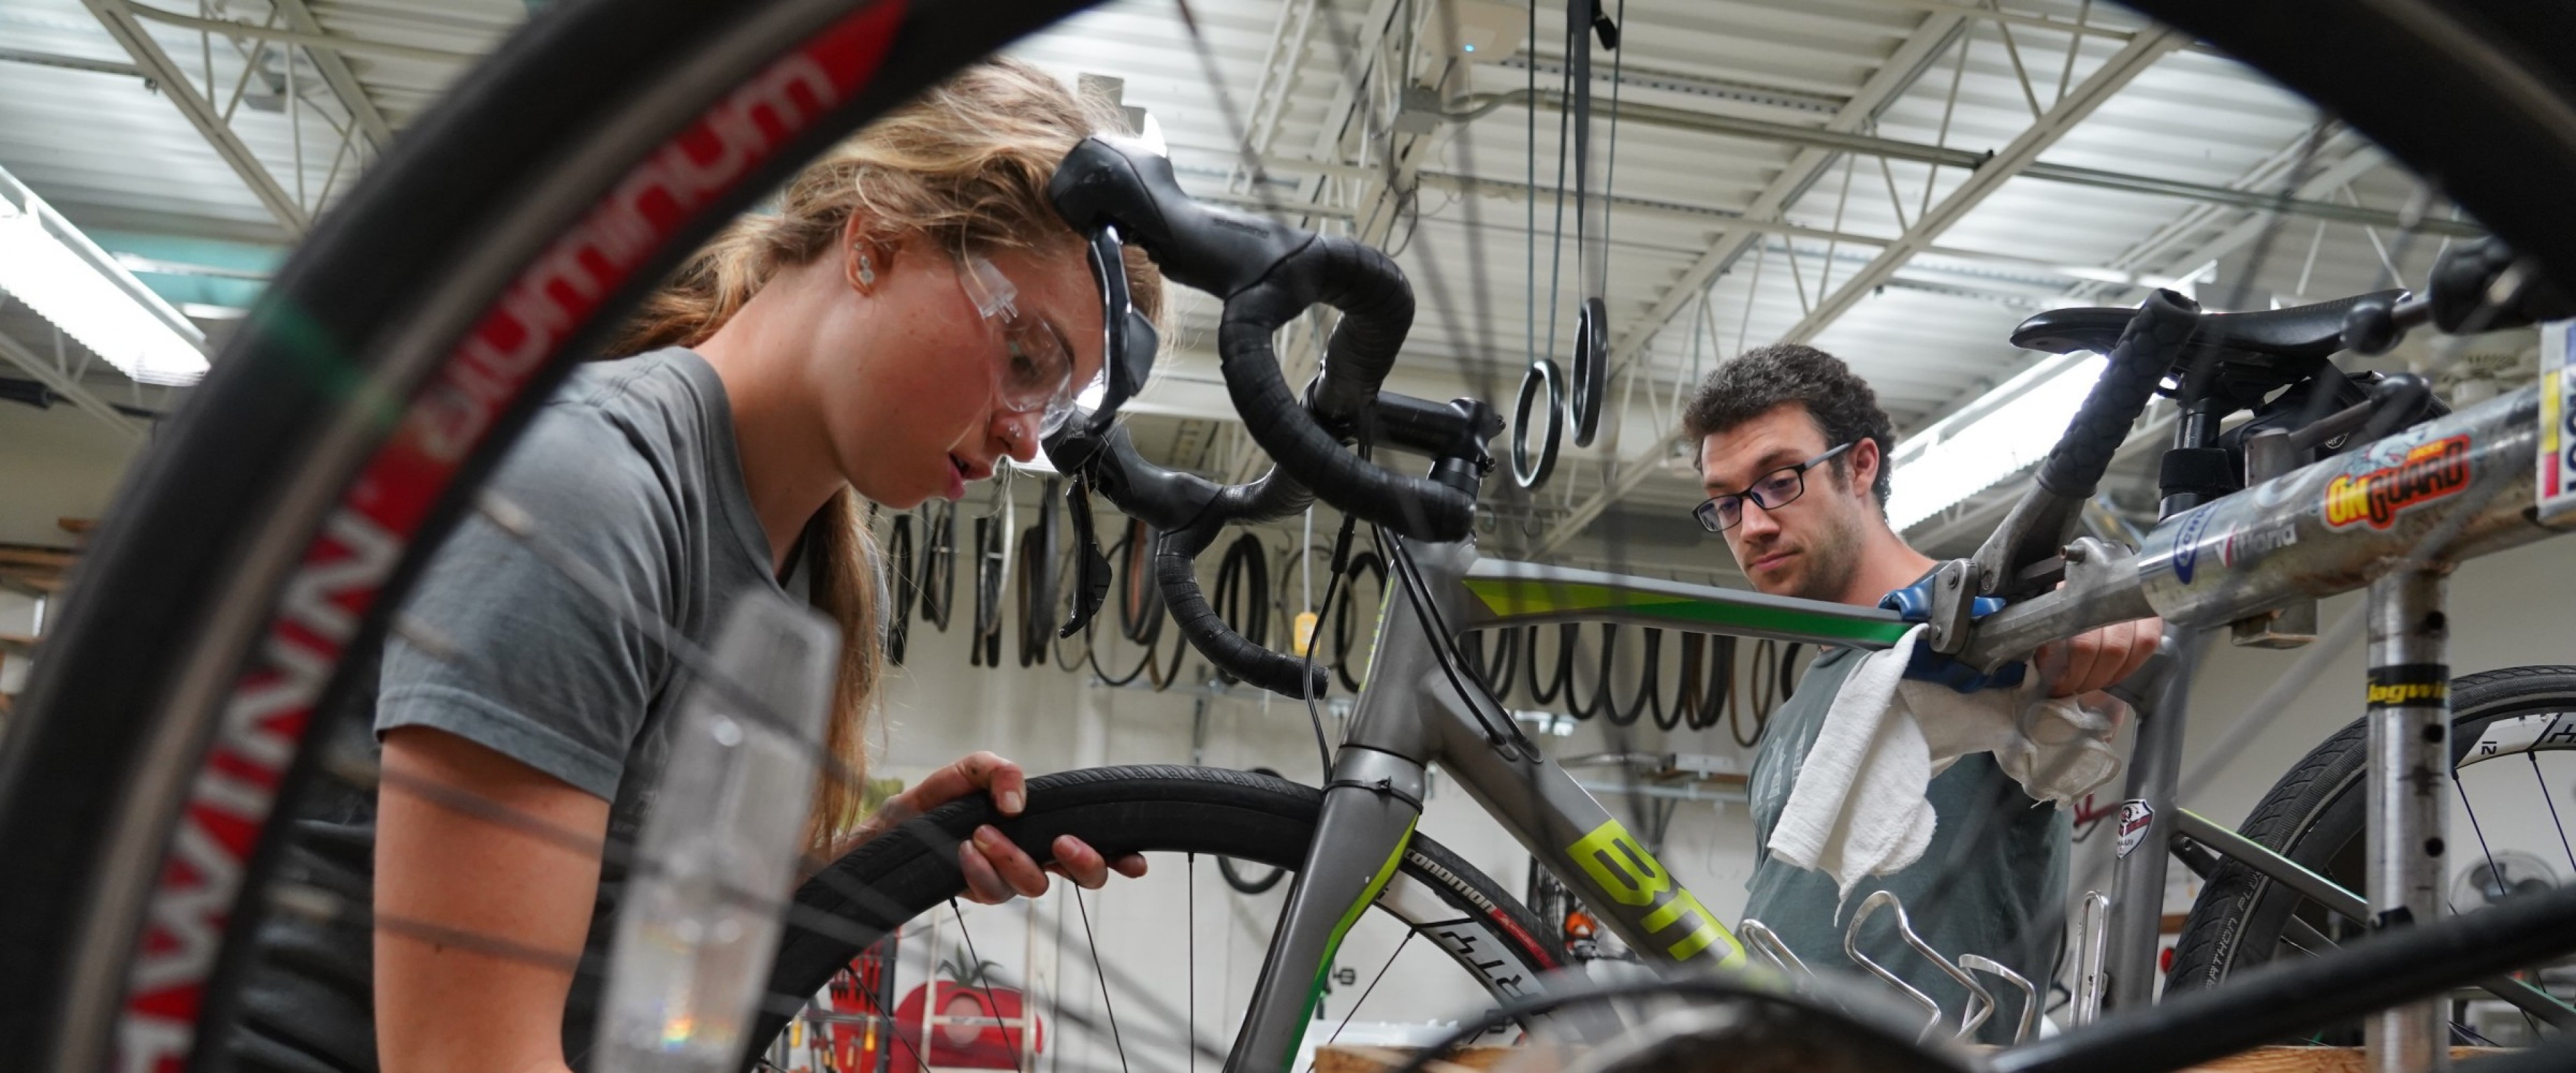 A pair of students work on a bicycle at WMU's Open Bike Shop